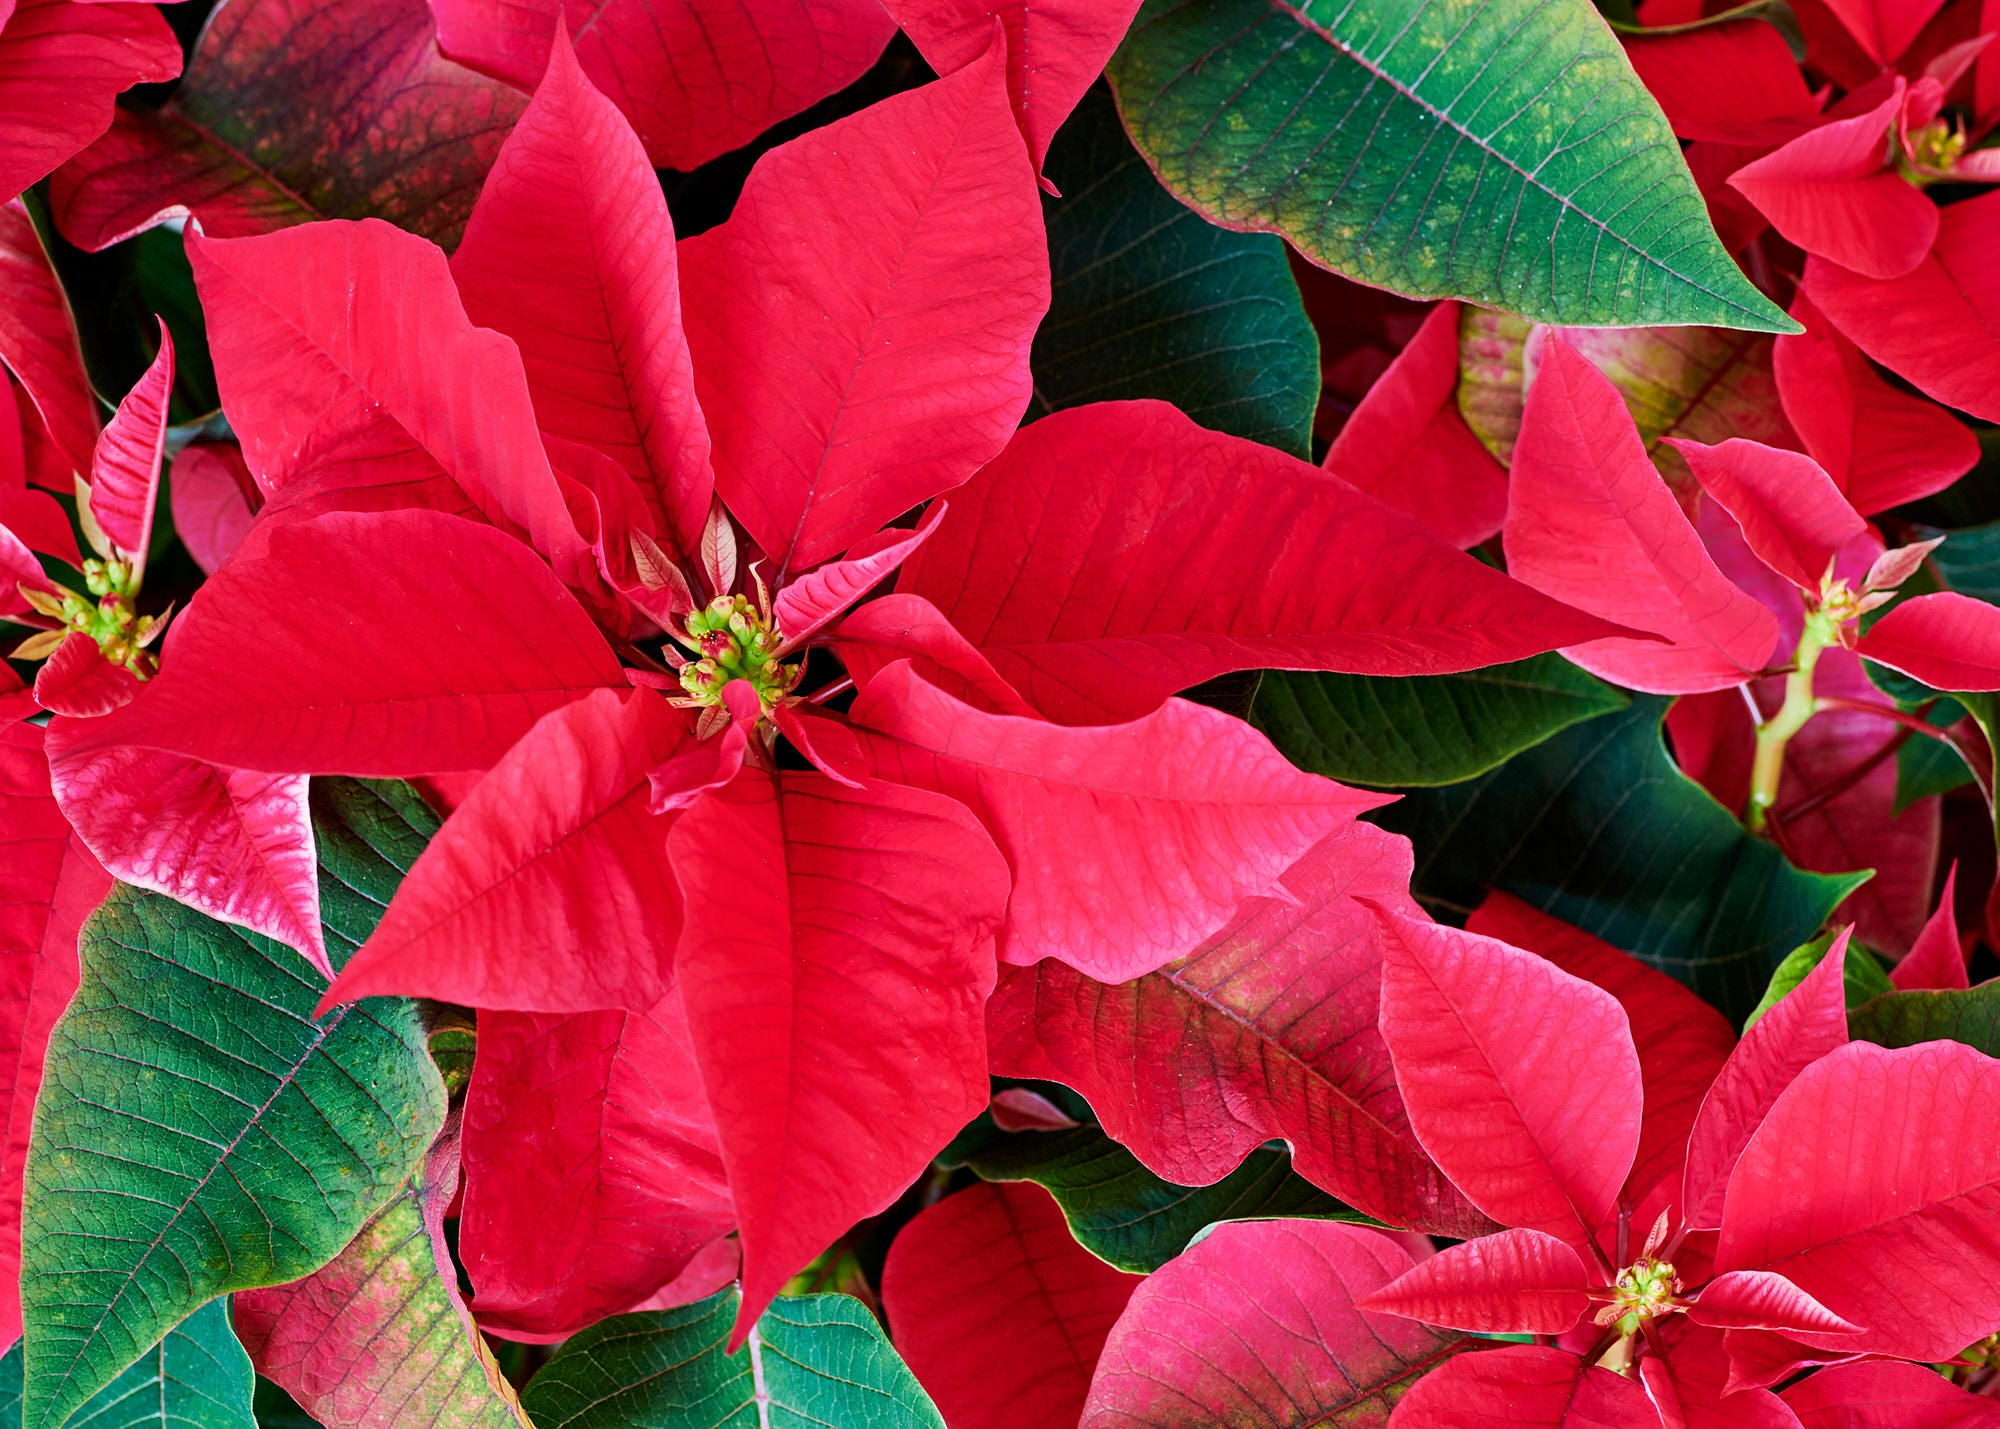 Poinsettia plant delivery in NYC and NJ